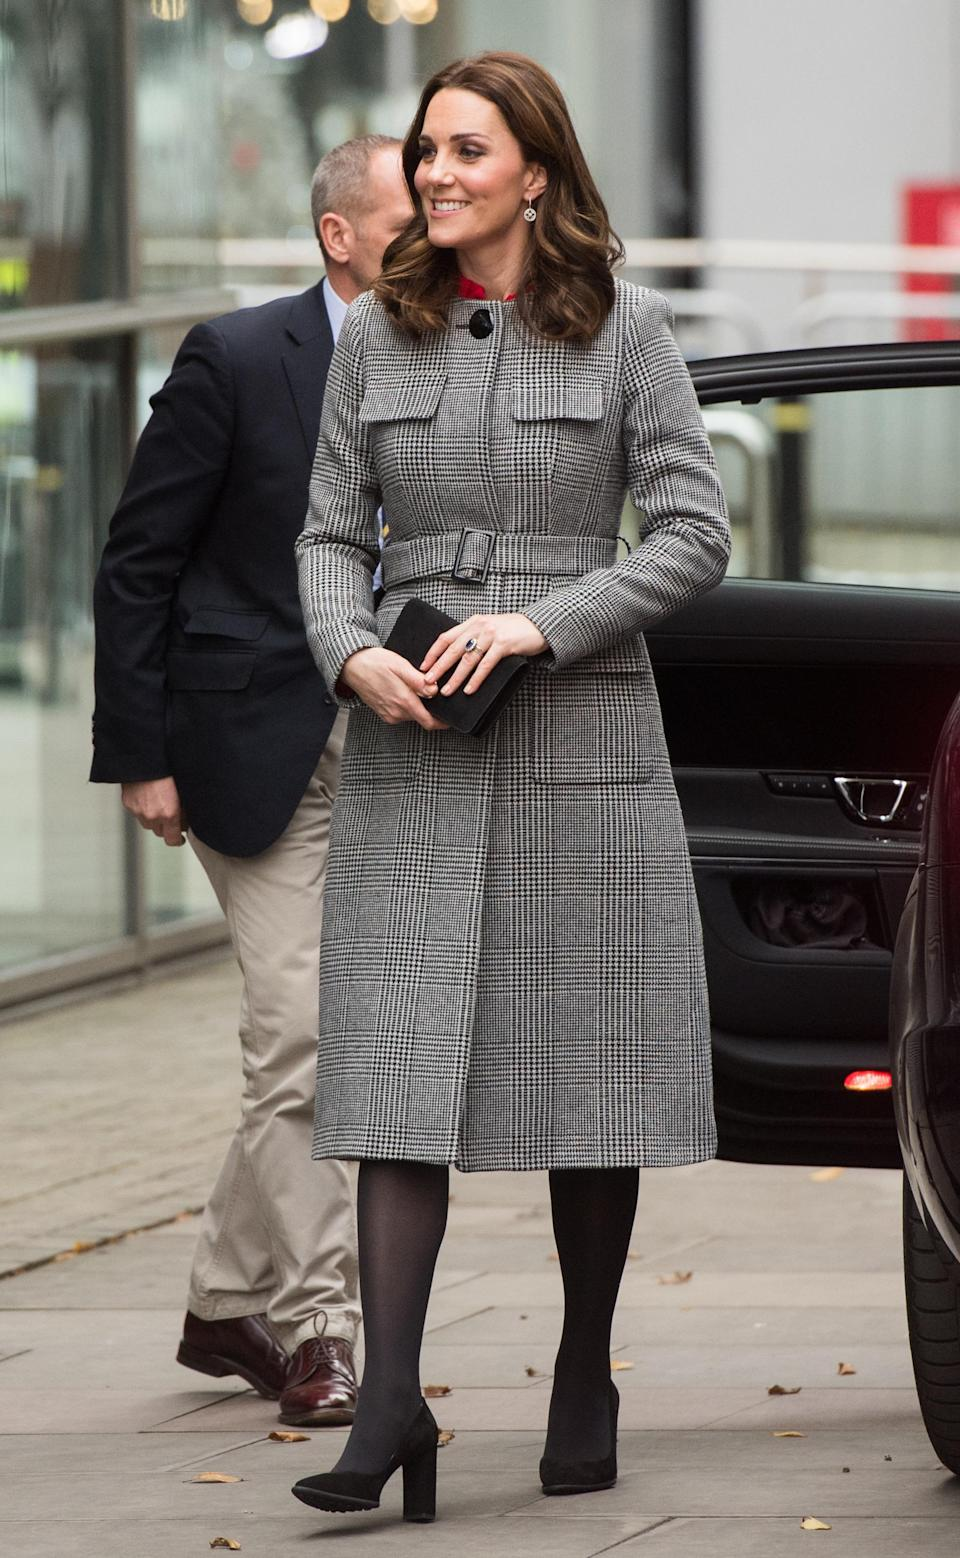 <p>The pregnant royal took a trip up to Manchester, attending the Children's Global Media Summit in a £495 grey L.K. Bennett coat and bright red Goat dress underneath. <i>[Photo: Getty]</i> </p>